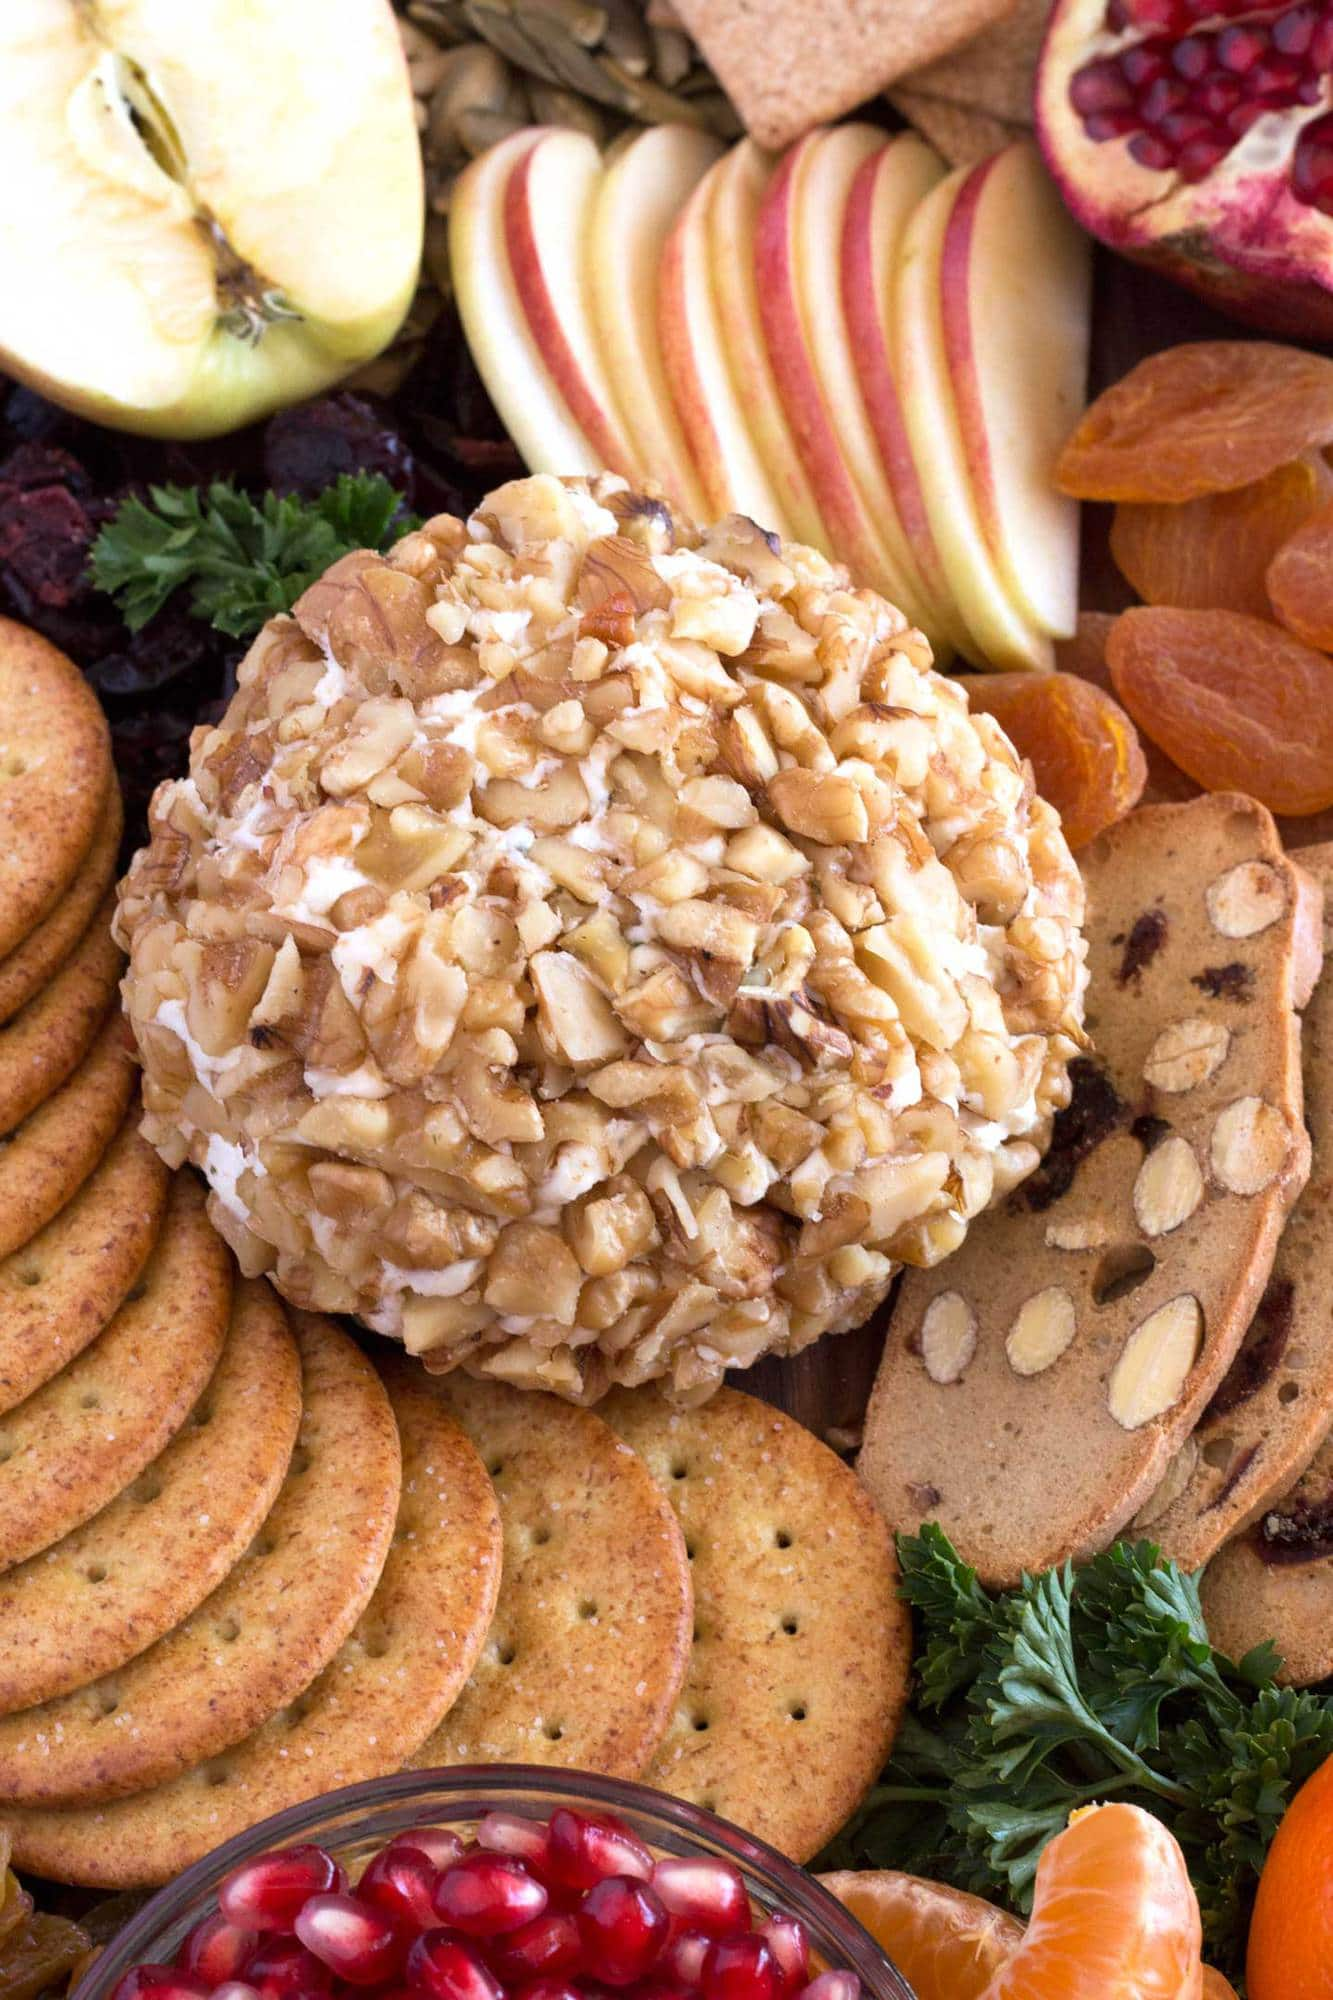 Cheese ball with ranch seasoning covered in walnuts and sitting on cutting board with crackers and fruit.